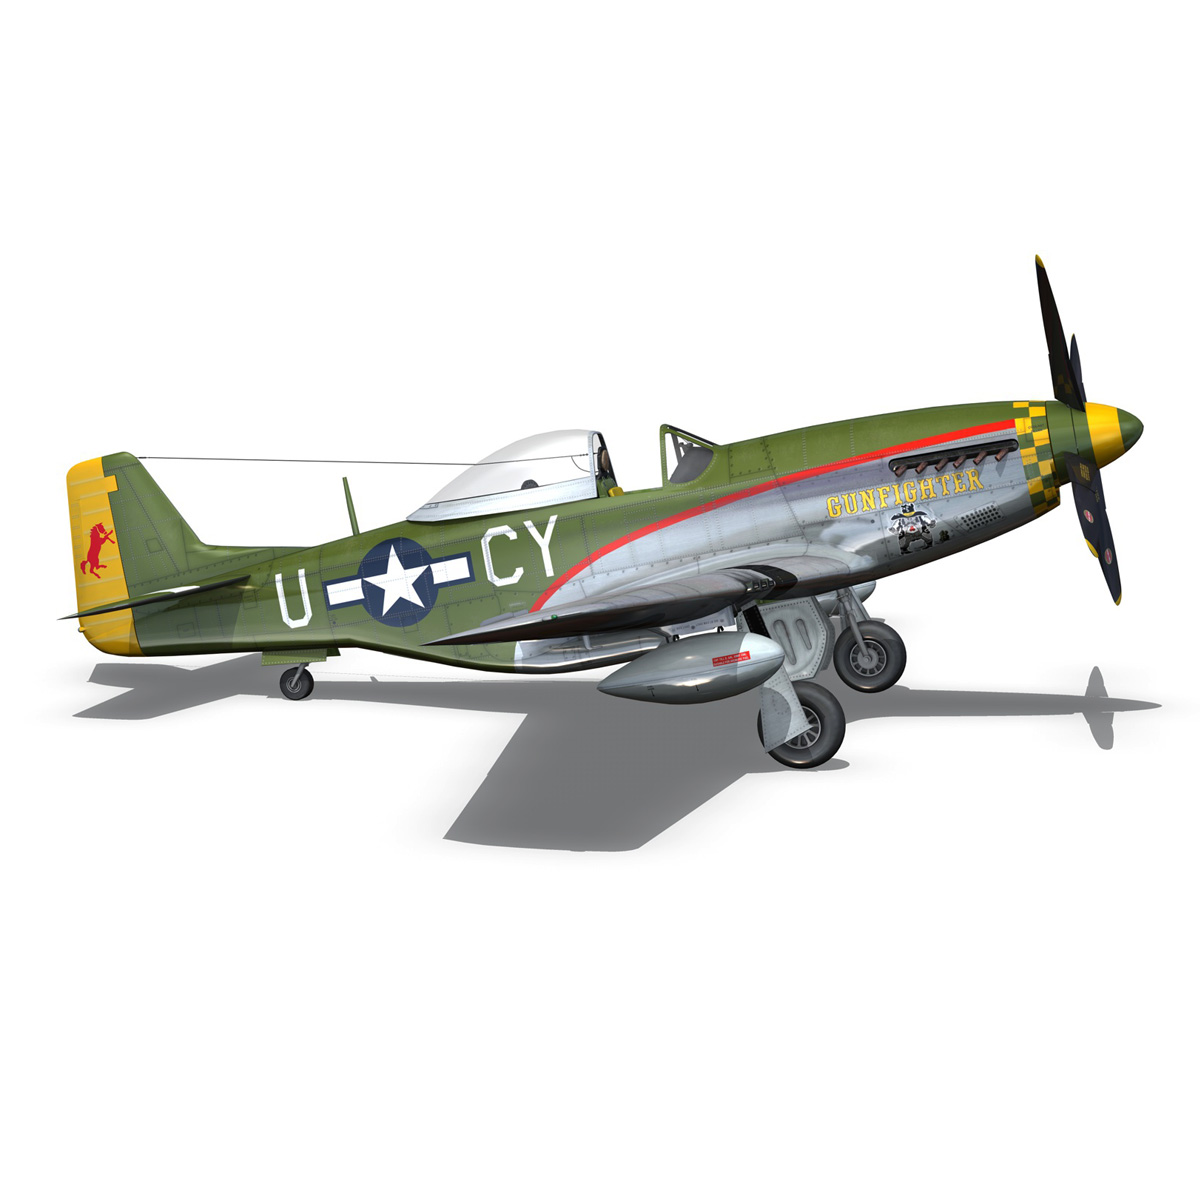 north american p-51d mustang – gunfighter 3d model fbx c4d lwo obj 269581